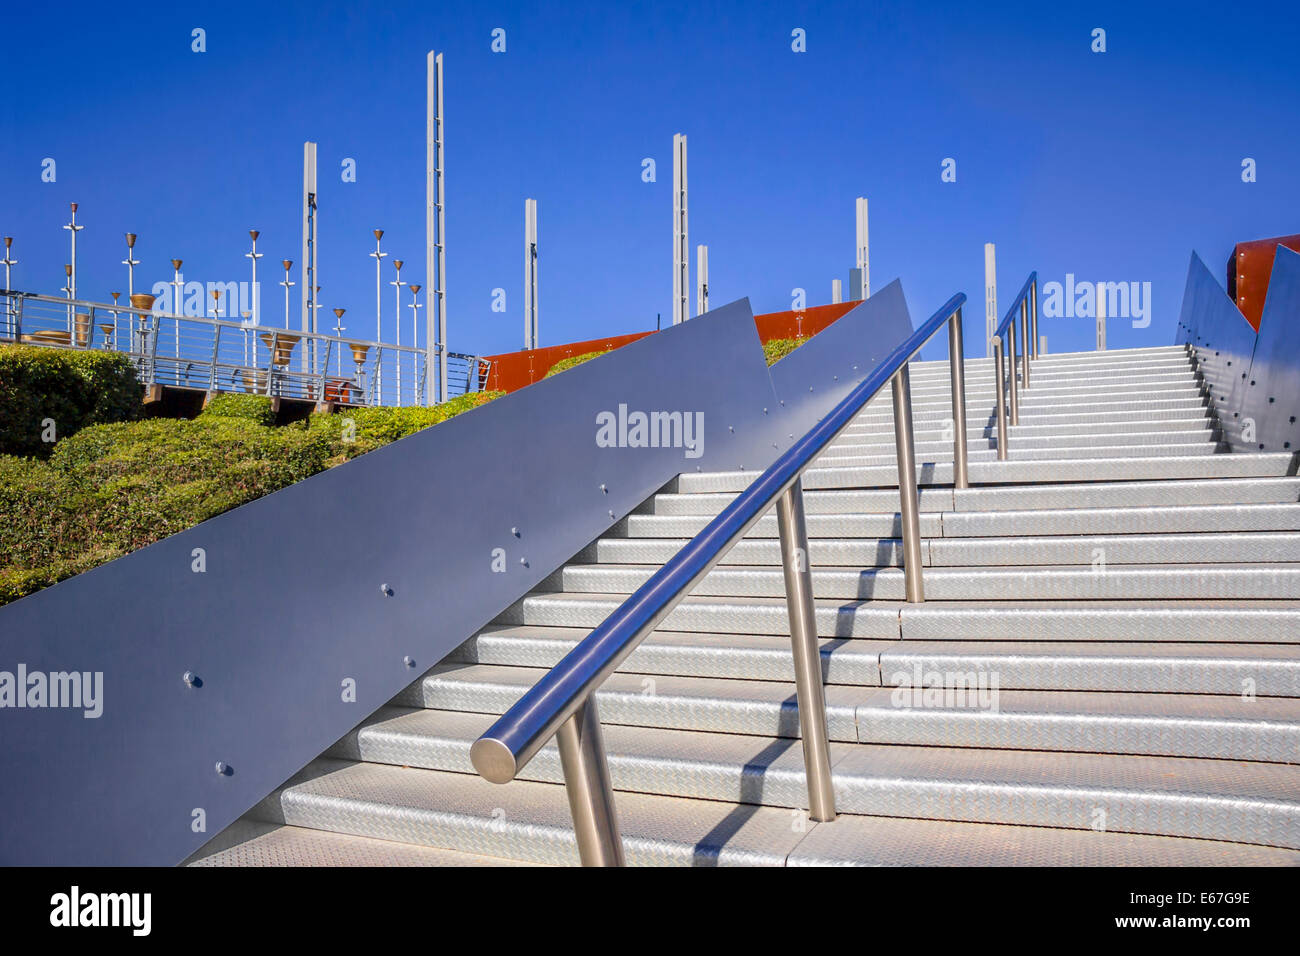 Steps leading to Federation Bells, public art installation Melbourne, Victoria Australia - Stock Image